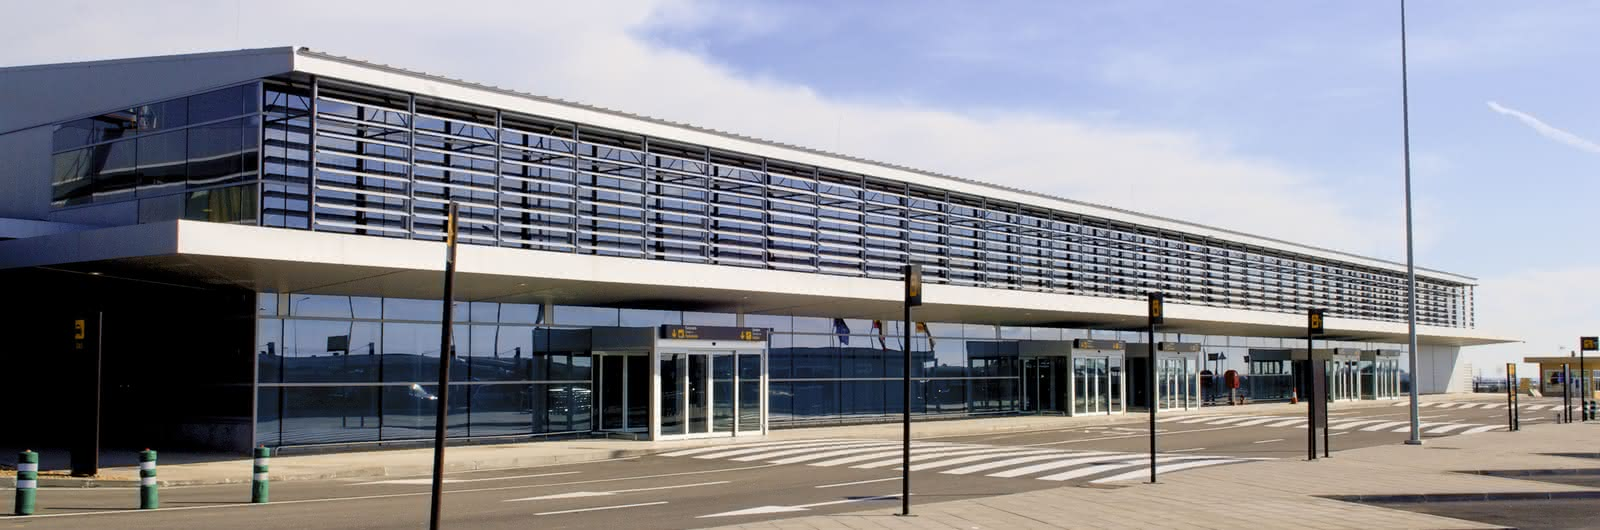 reus airport header